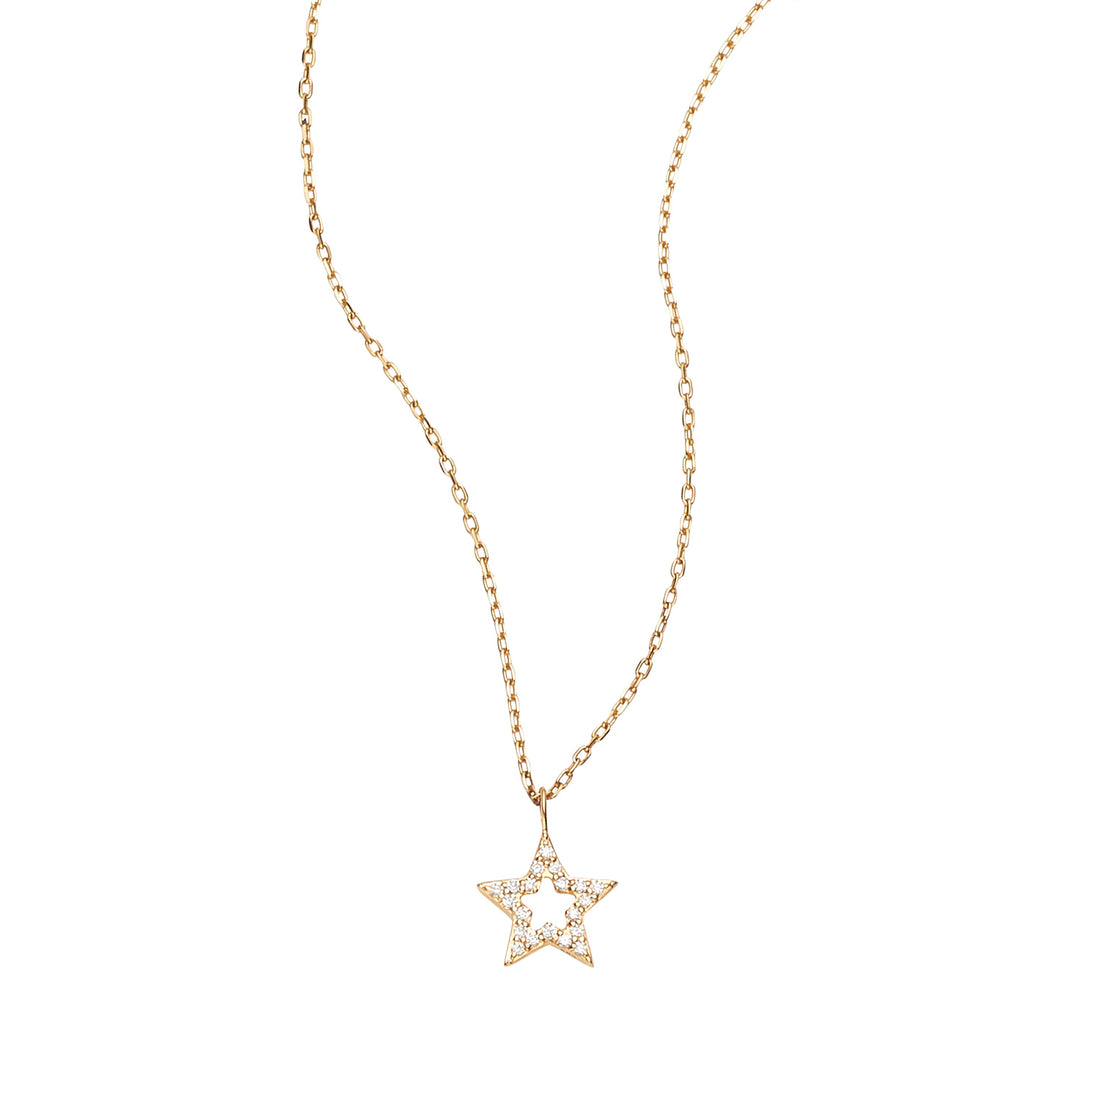 LOULERIE 8MM DIAMOND OPEN STAR NECKLACE